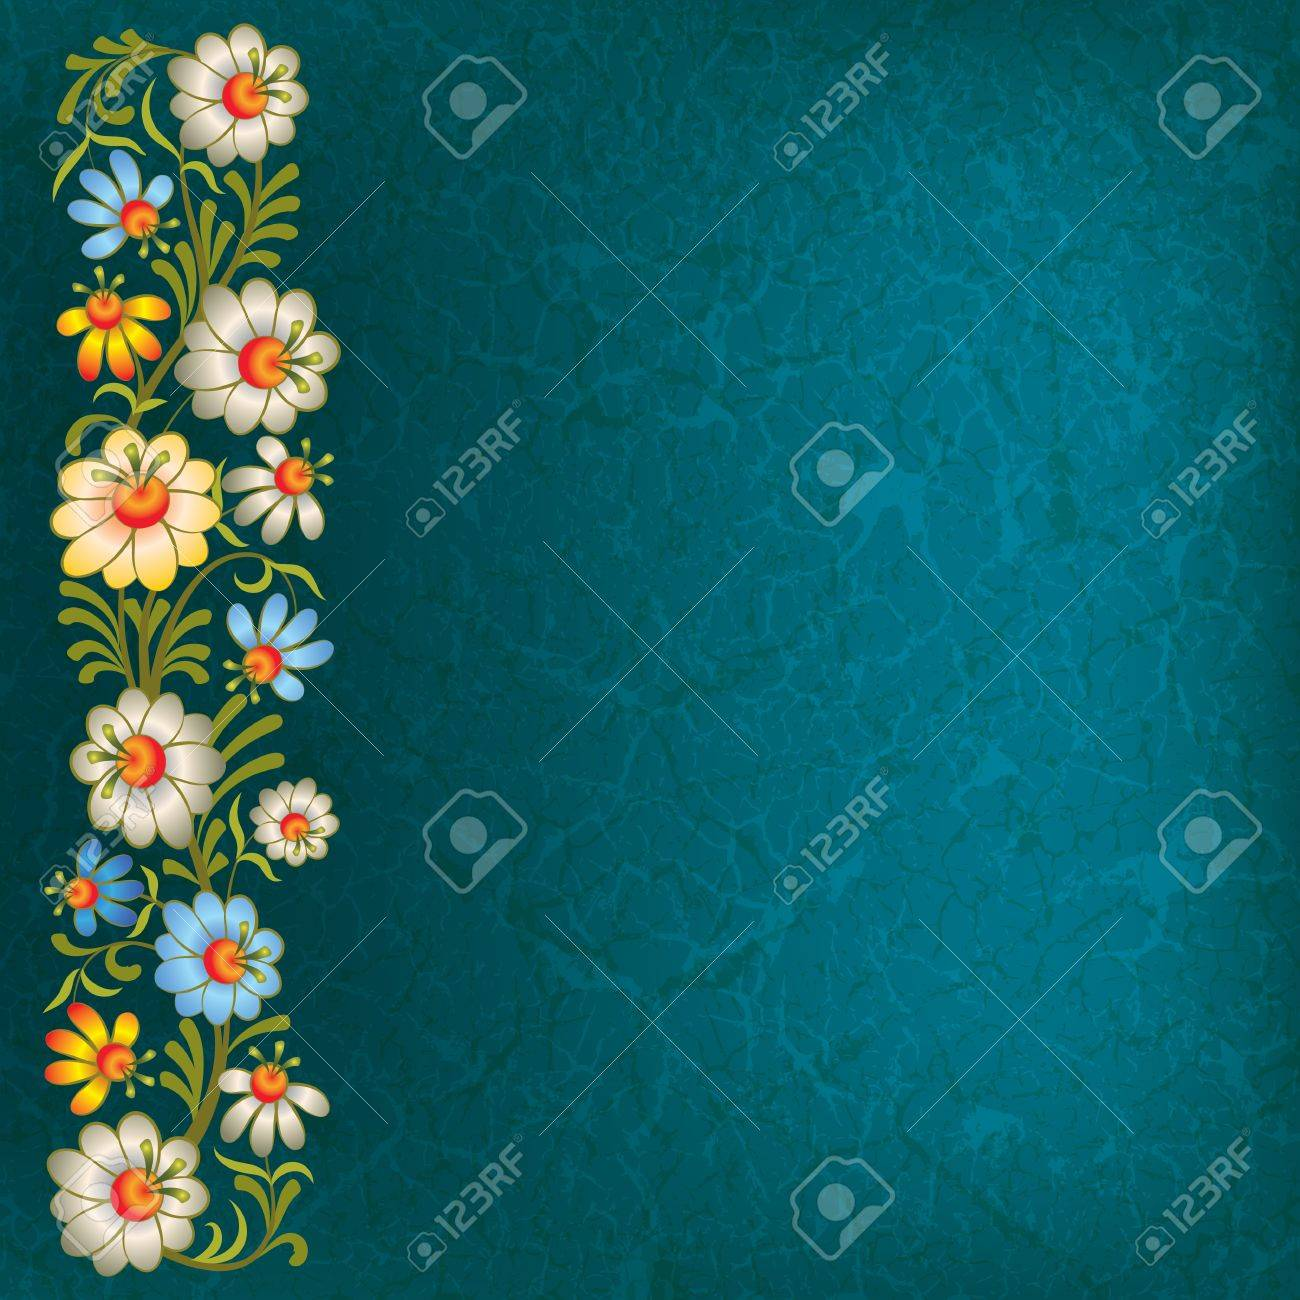 abstract vintage background with floral ornament on blue Stock Vector - 9615508